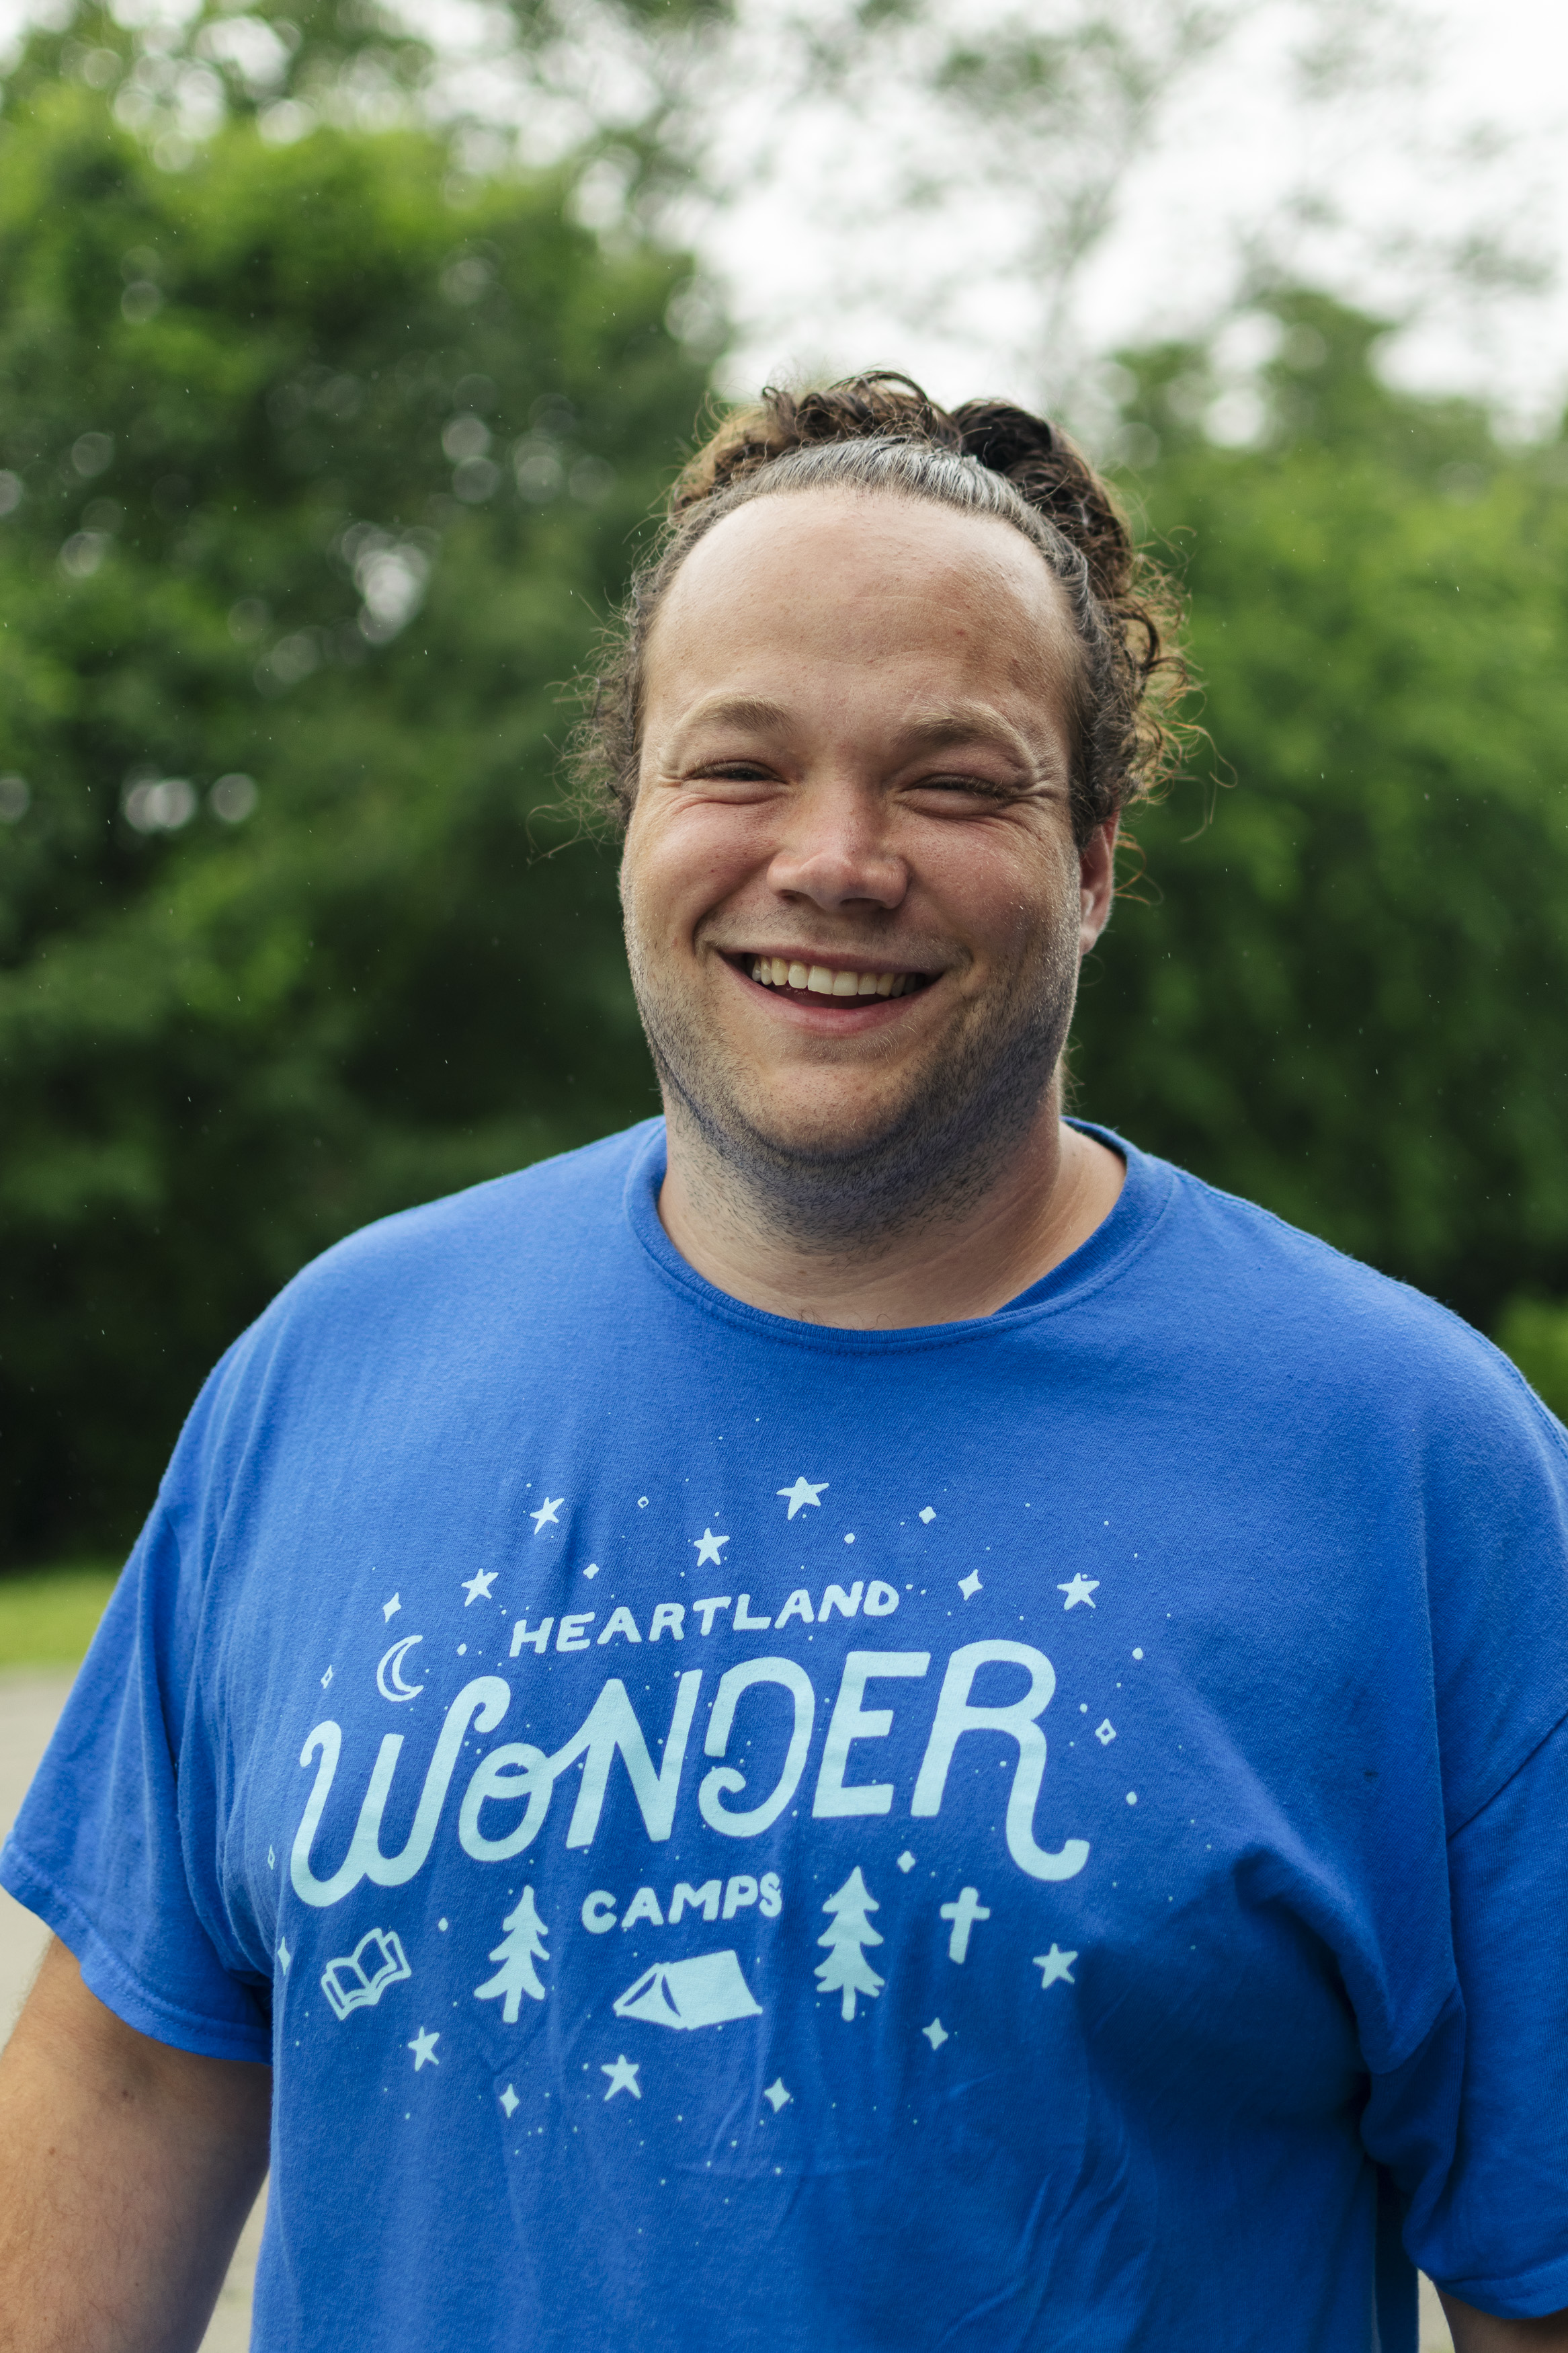 Drew Renollet is one of the Cornerstone Interns with Heartland Camps.